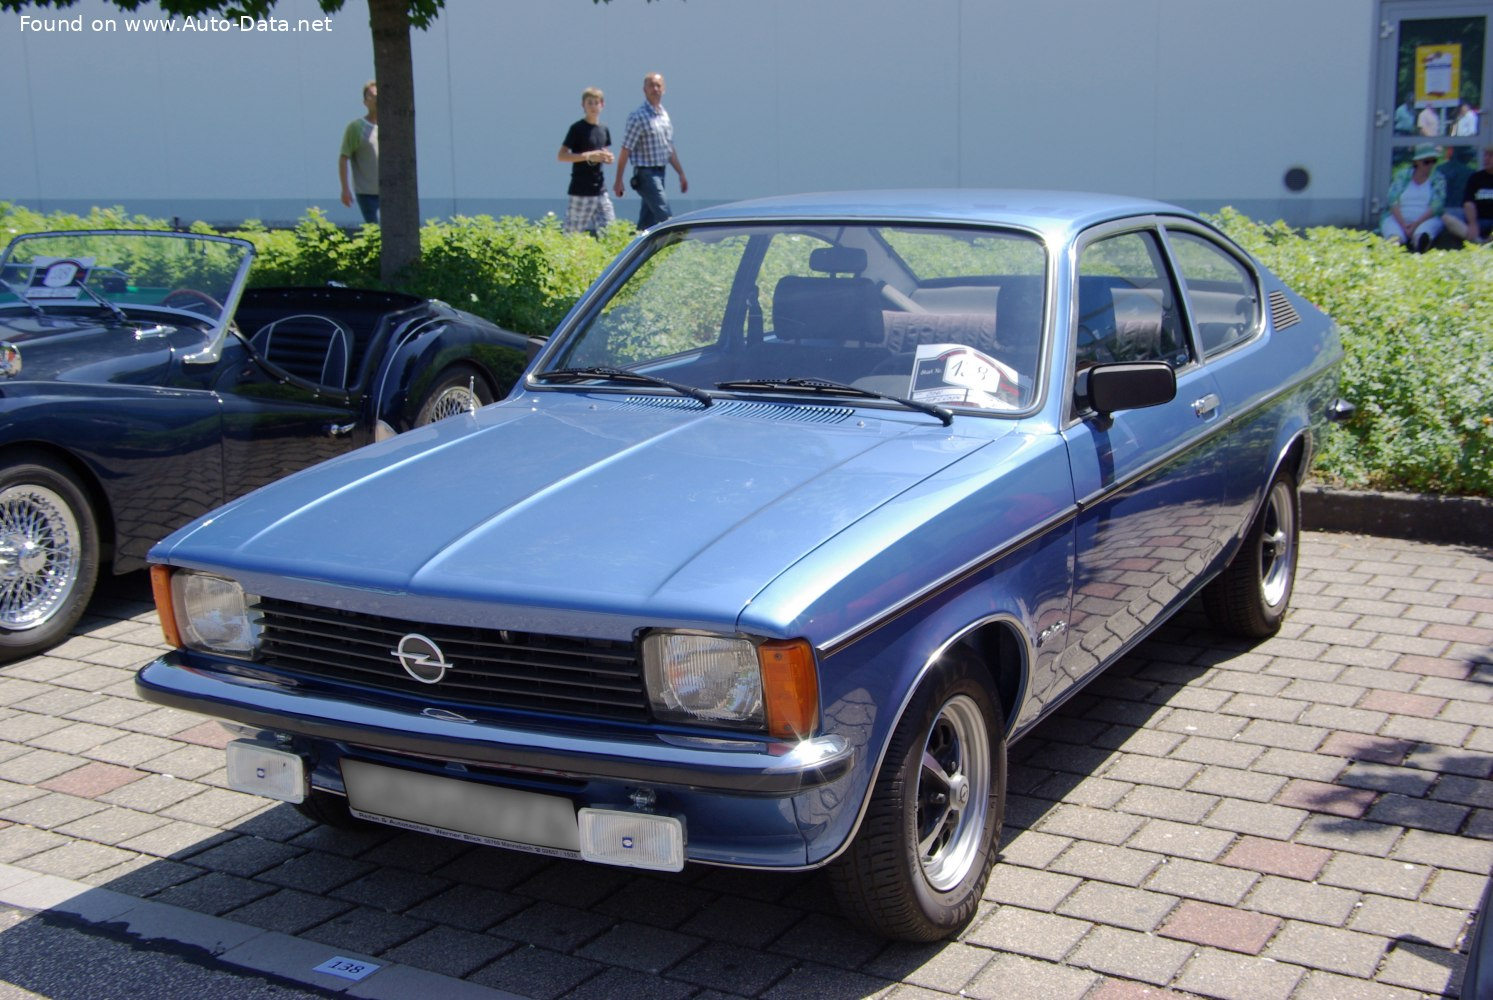 1977 Opel Kadett C Coupe 2 0 Gt E 115 Hp Technical Specs Data Fuel Consumption Dimensions